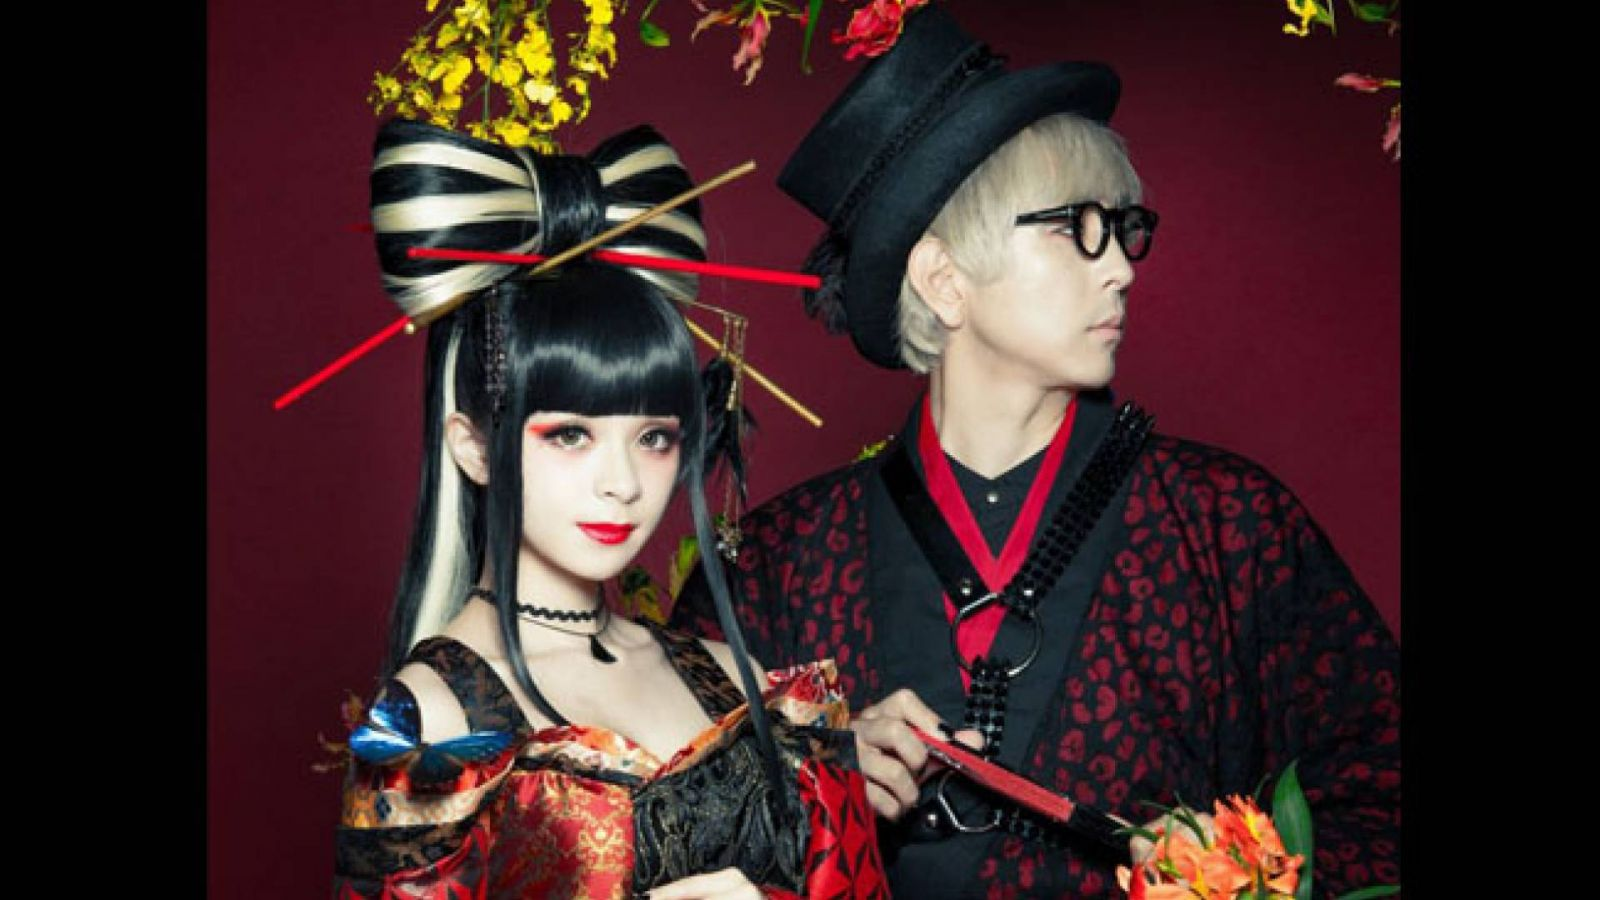 New Single from GARNiDELiA © GARNiDELiA. All rights reserved.